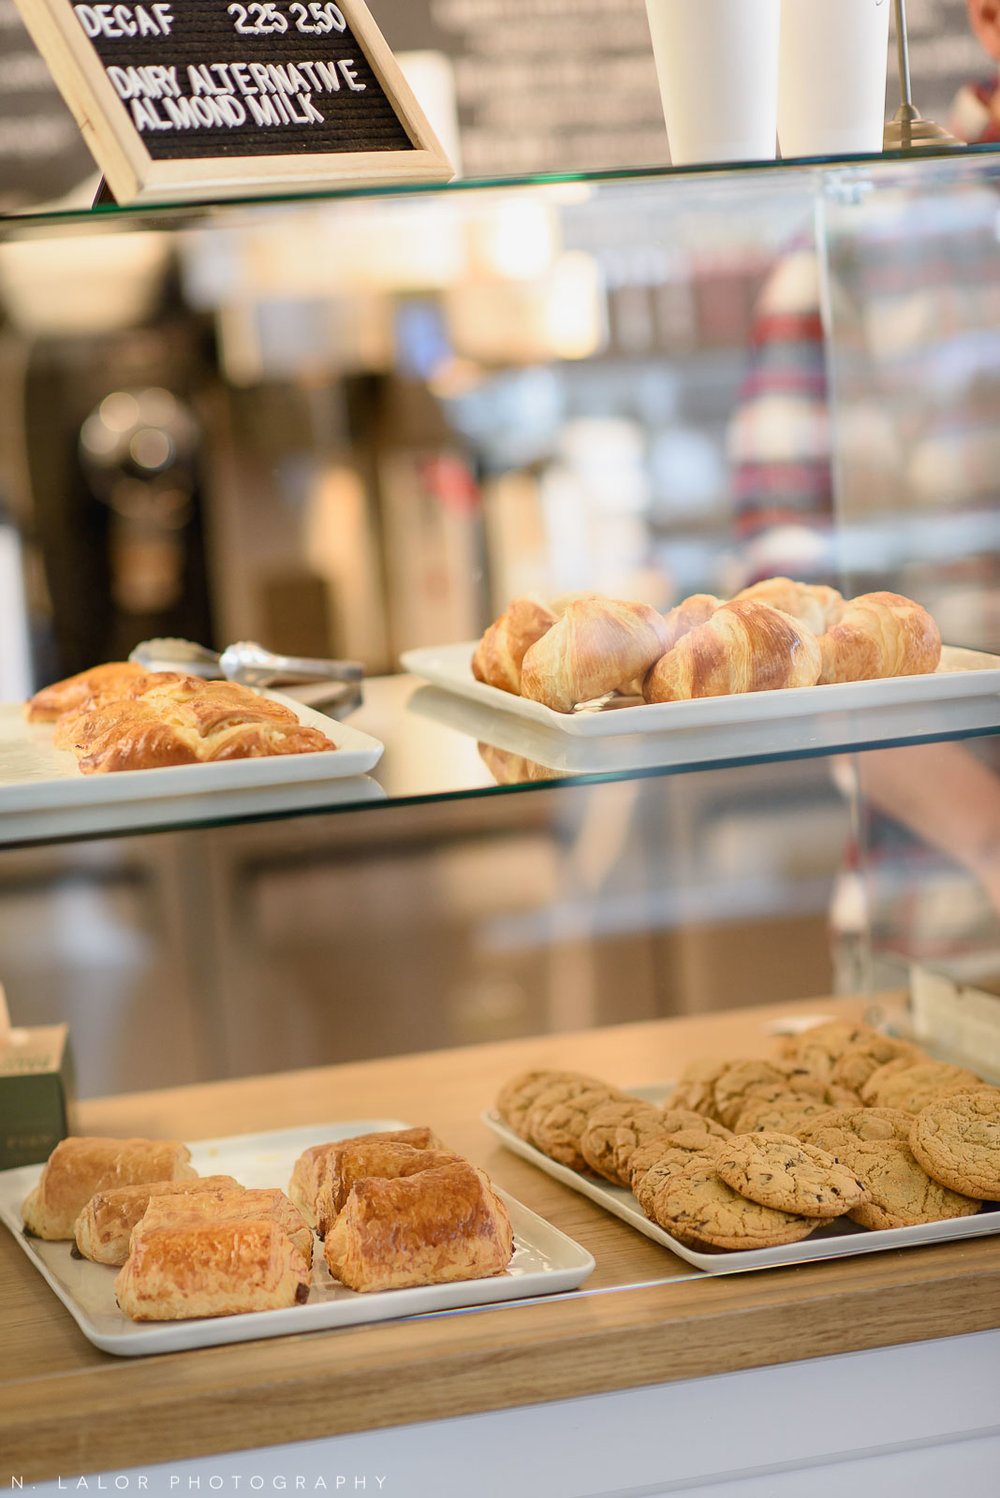 Baked goods. Roost Darien, small business photos by N. Lalor Photography.